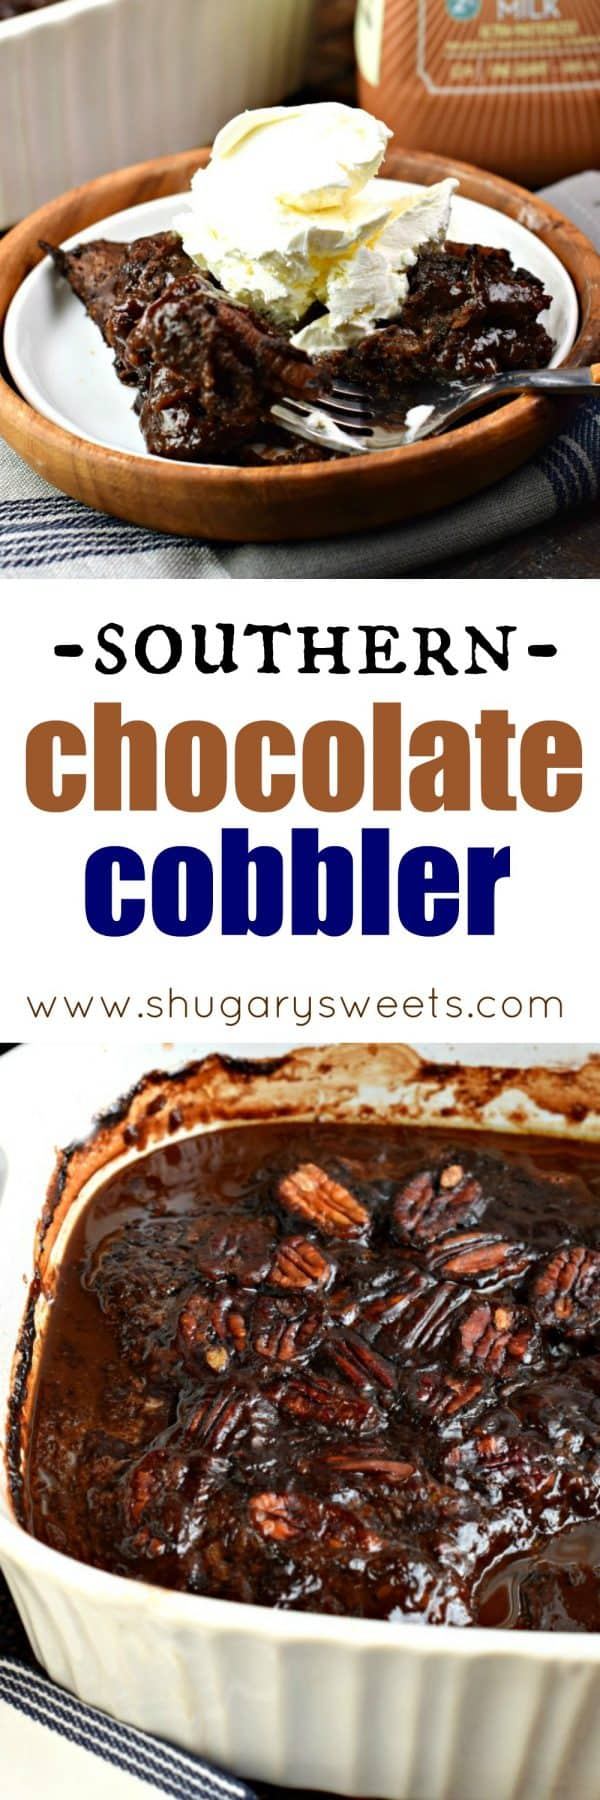 This classic, southern Chocolate Cobbler recipe has a rich, fudgy sauce topped with a decadent brownie-like topping! #farfromordinarymilk #sponsored #chocolatemilk #cobbler